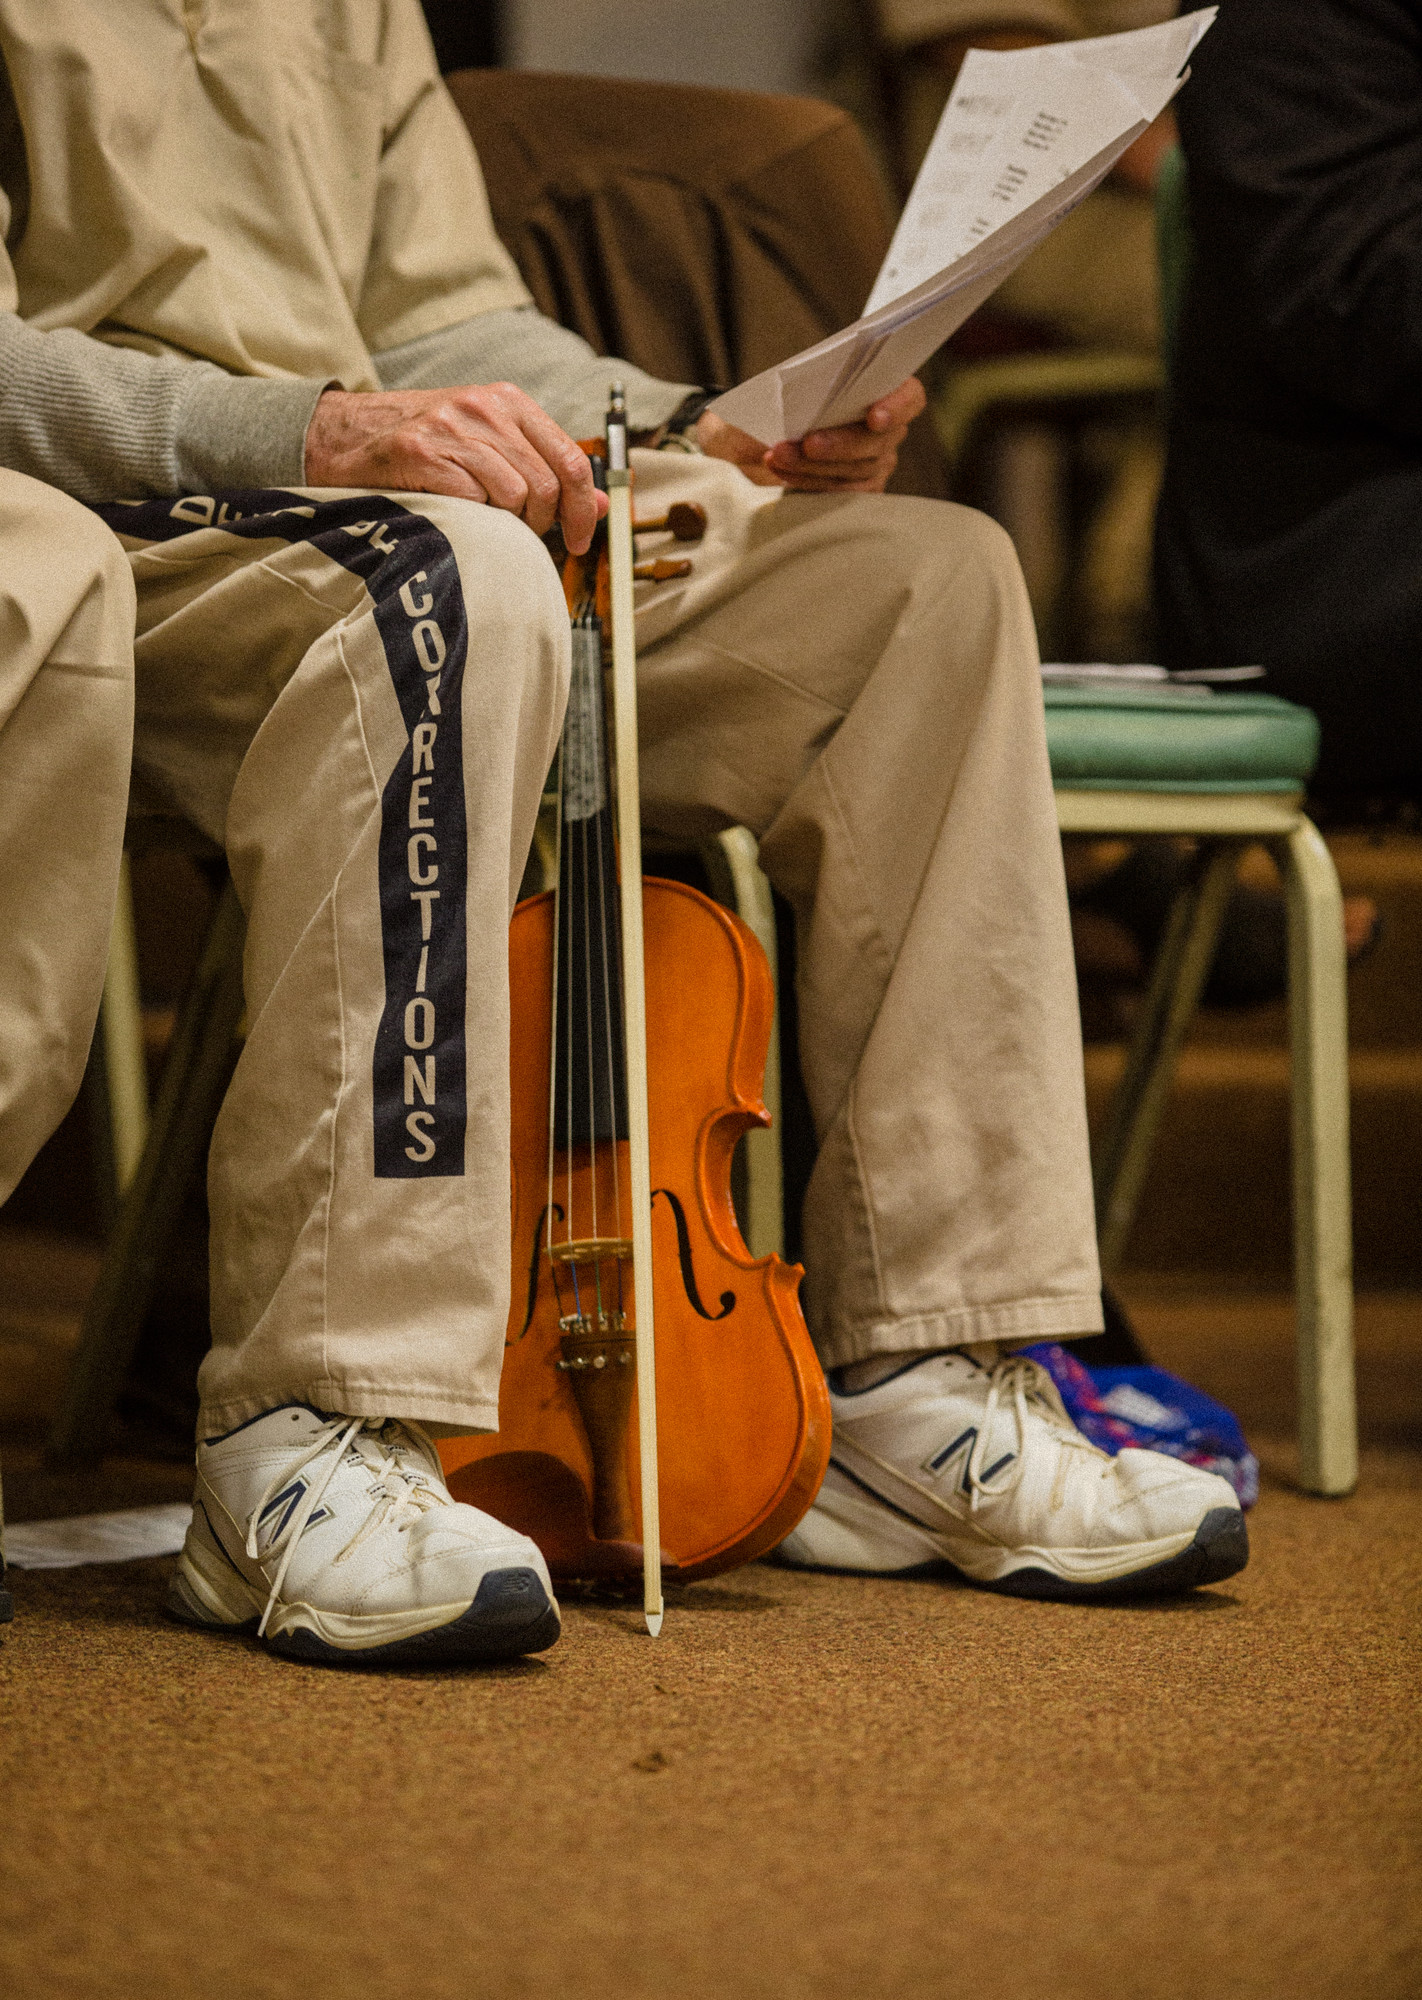 A Lee Correctional Institution inmate sits with his violin.